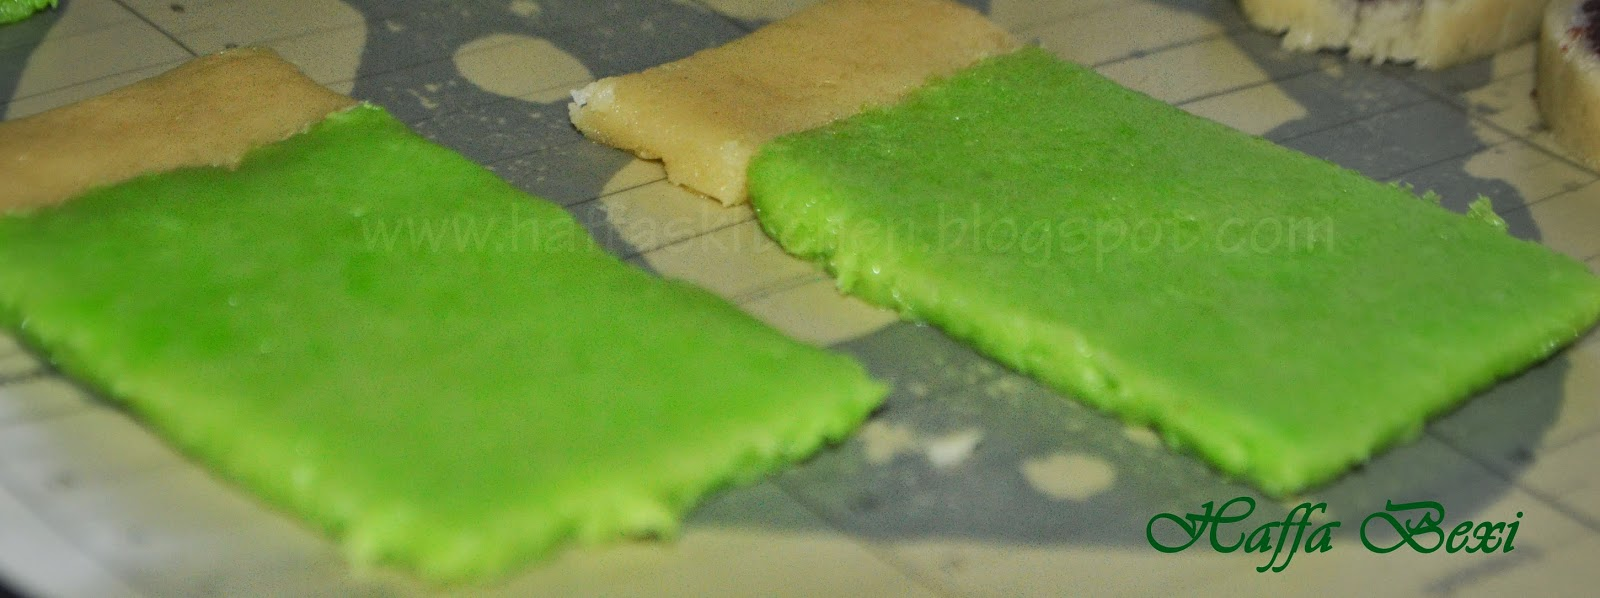 Baking| Defence day special recipe| Kids recipes| 14 august special recipe| Pakistan independence day recipe| Butter cookies| Flag cookies| Snacks ideas| butter cookies recipe| butter cookie recipe| recipe for butter cookies| how to make butter cookies| easy butter cookies